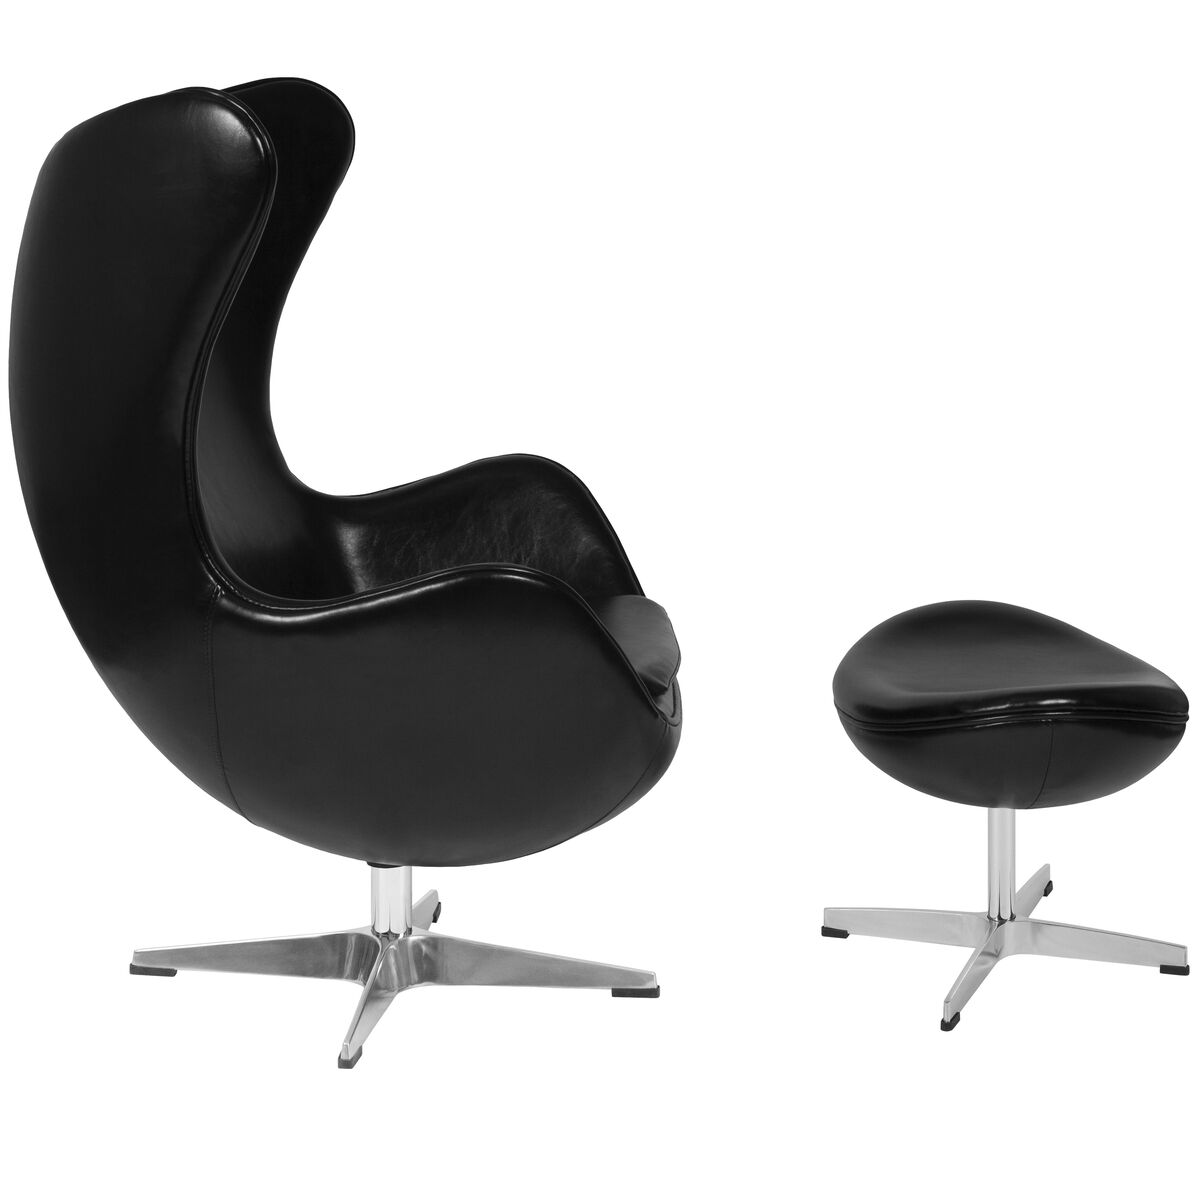 Brilliant Black Leather Egg Chair With Tilt Lock Mechanism And Ottoman Ibusinesslaw Wood Chair Design Ideas Ibusinesslaworg